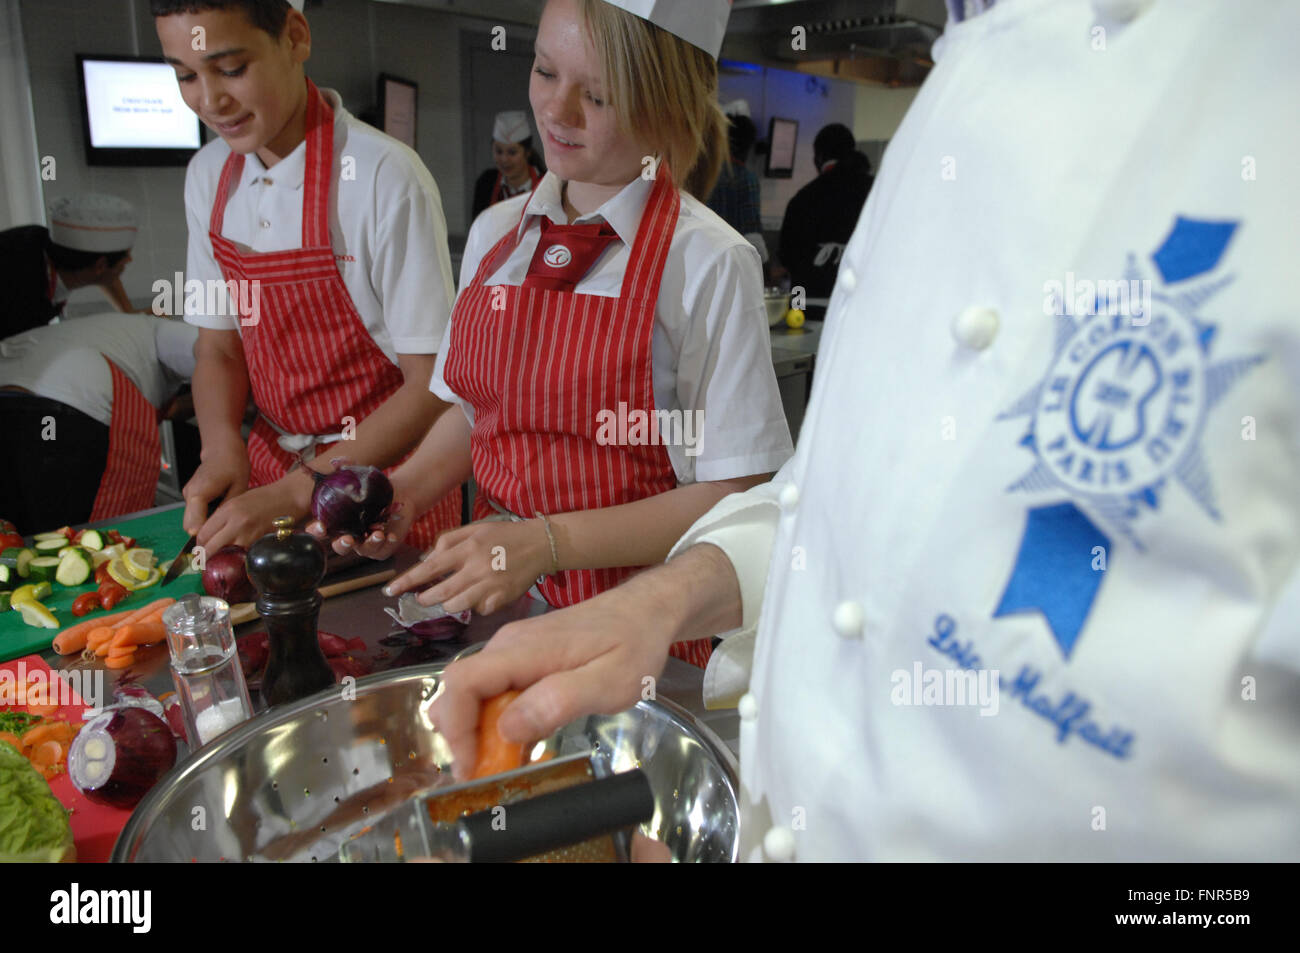 Prestigious Culinary Scholarship offered by Le Cordon Bleu shines spotlight on today's ambitious youth - Stock Image